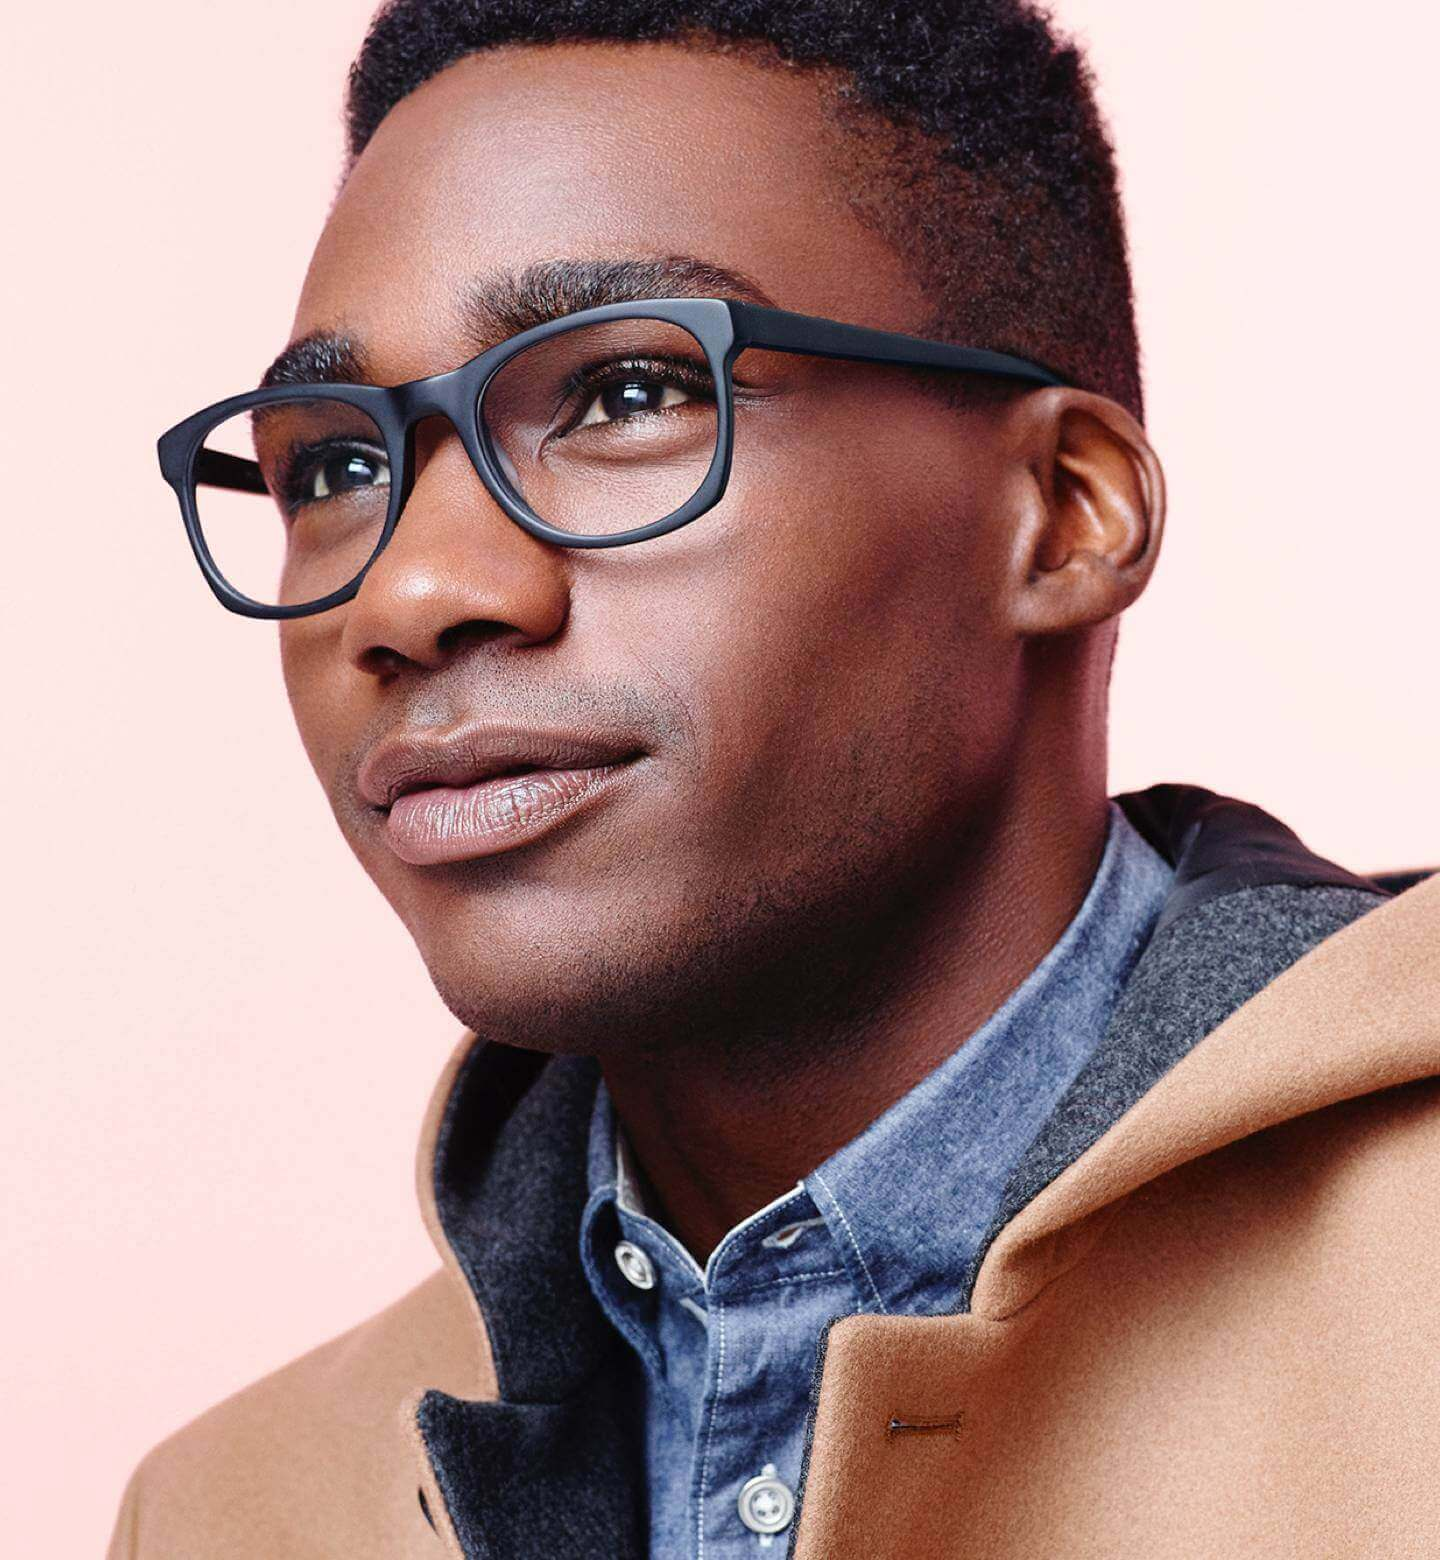 Edgar in Jet Black Matte Warby Parker